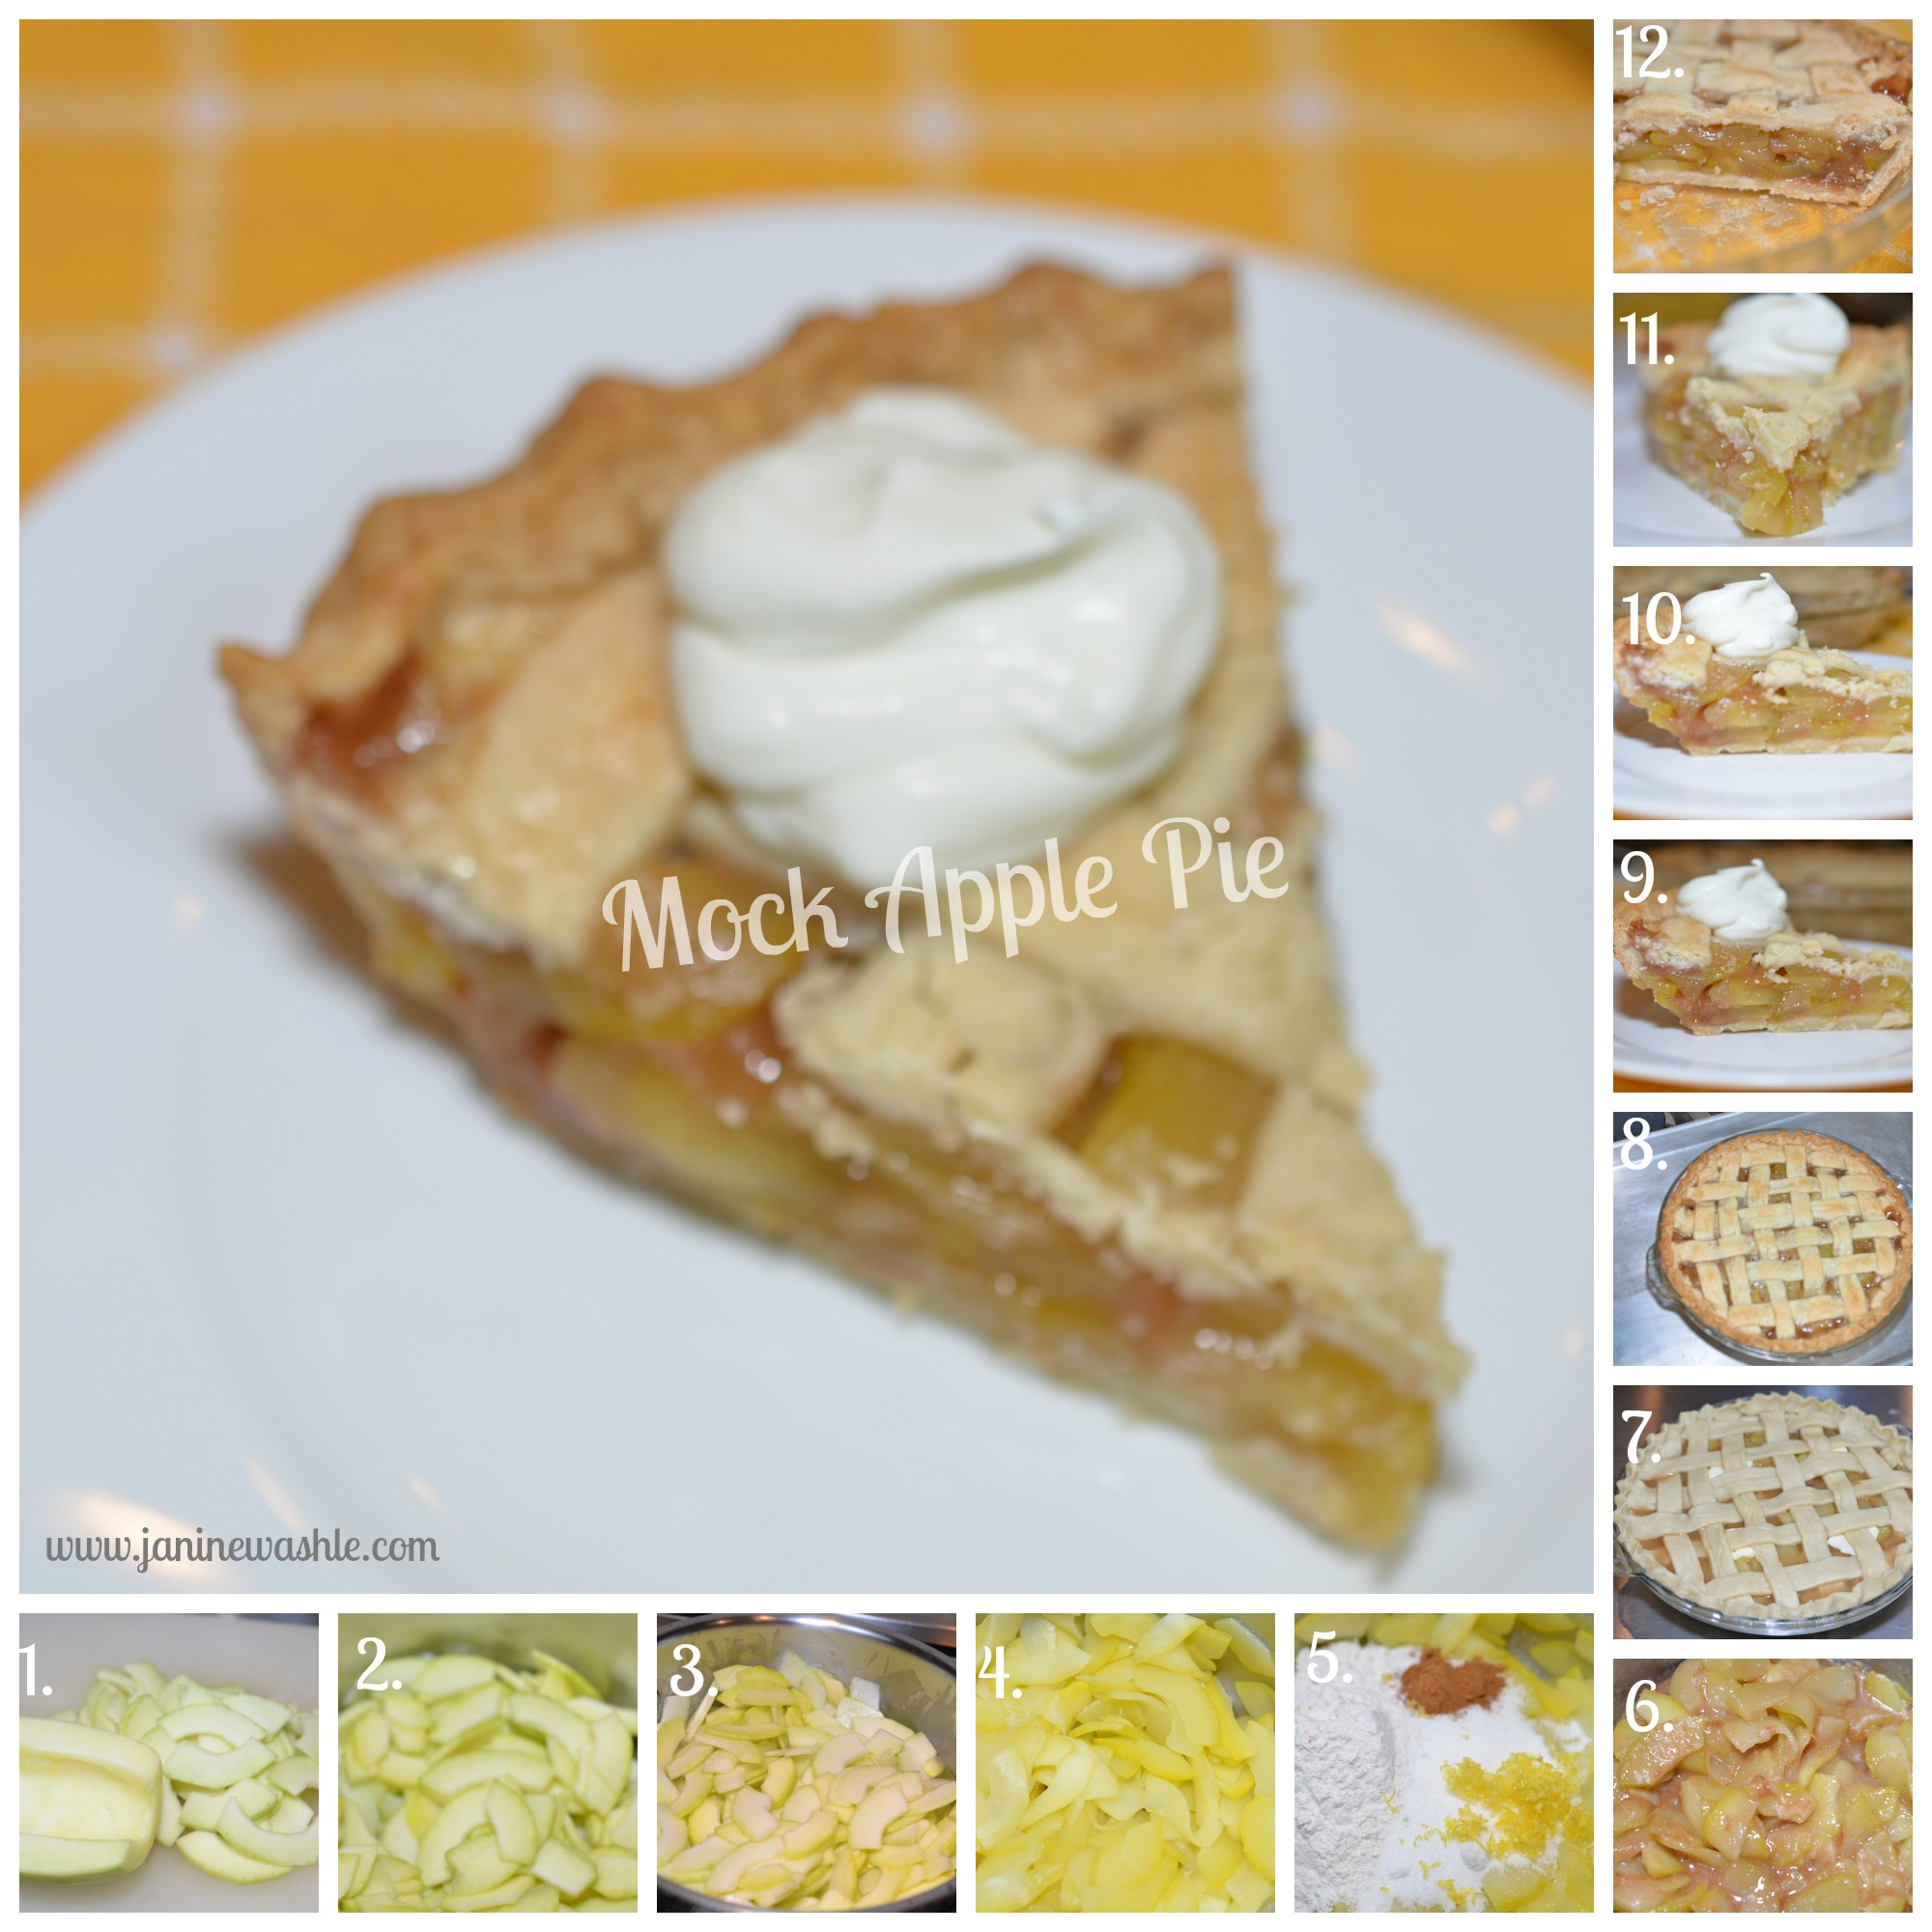 recipe: zucchini apple pie. [20]